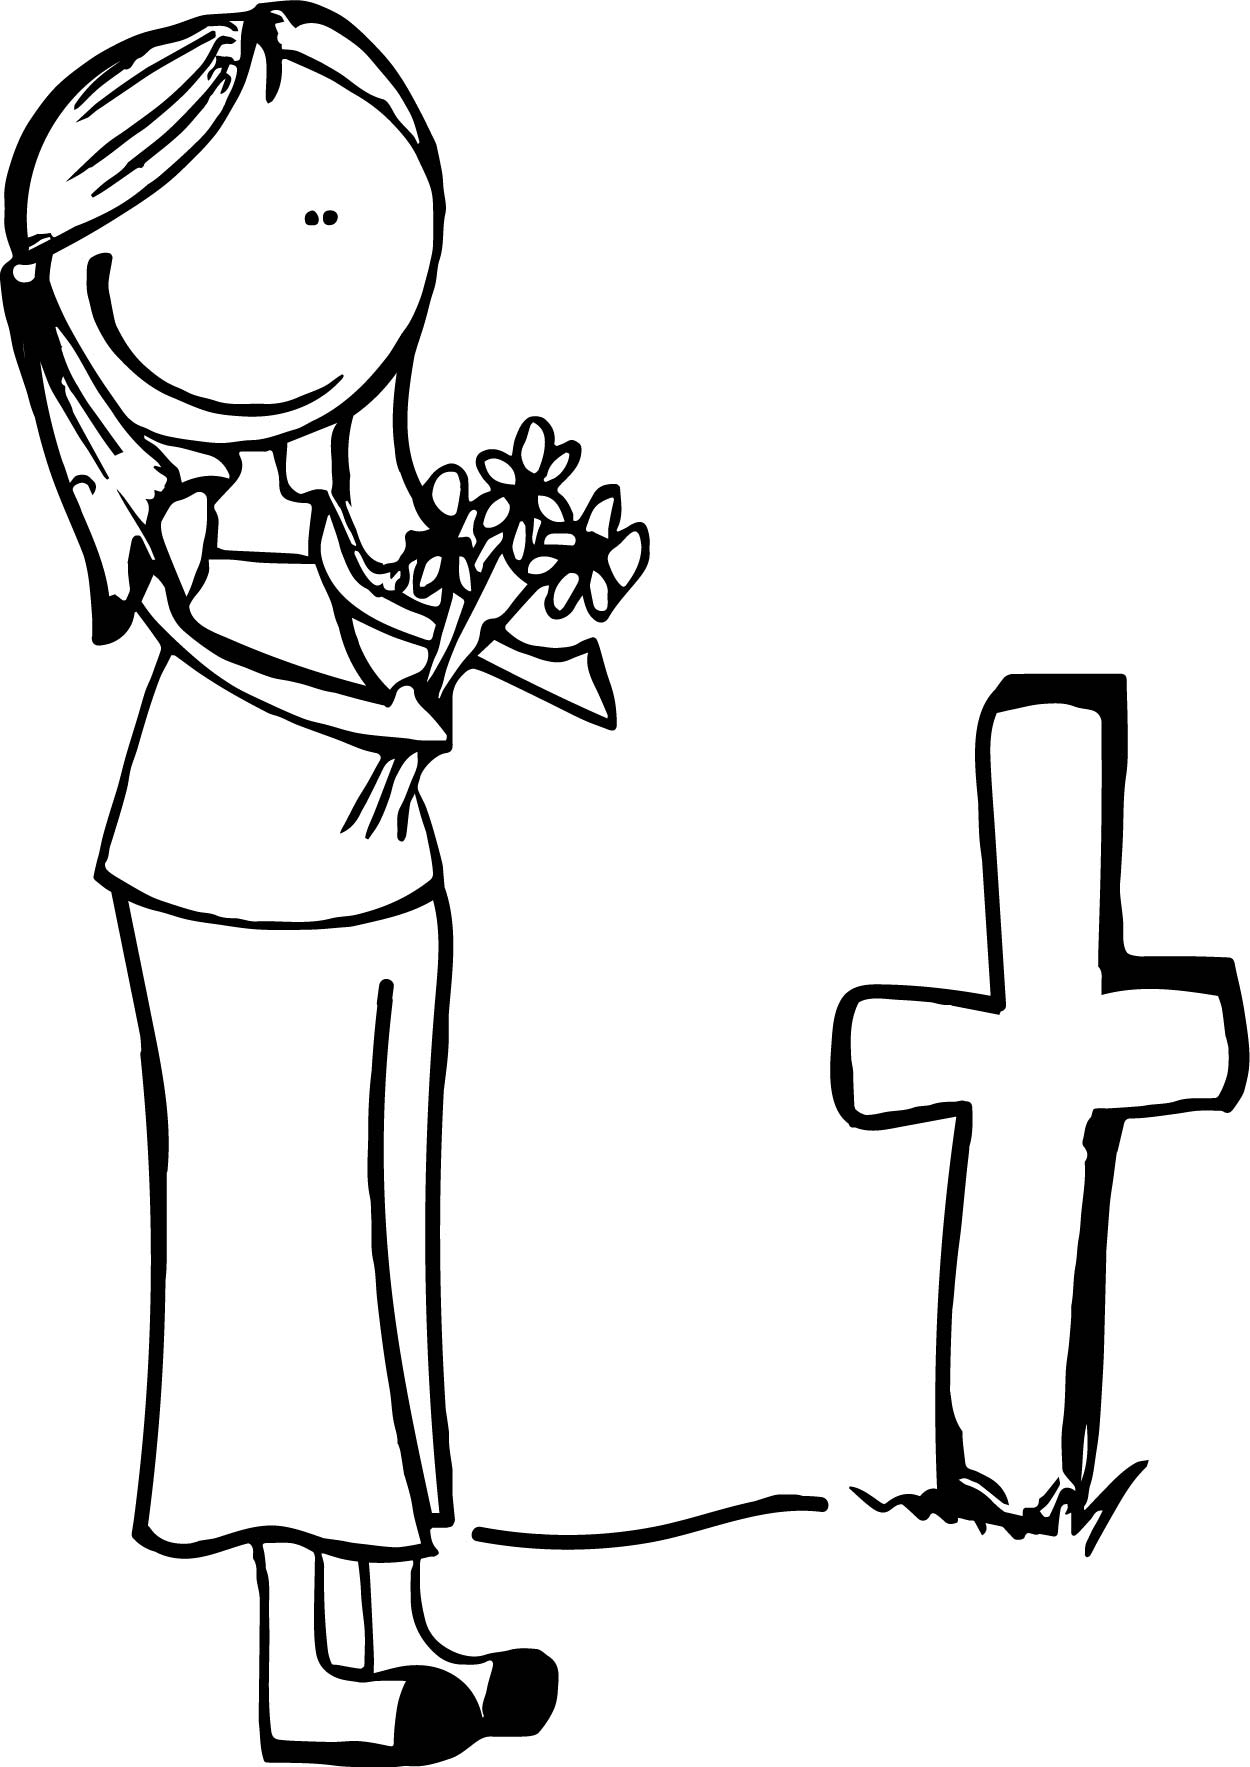 All Souls Day Coloring Pages - Democraciaejustica